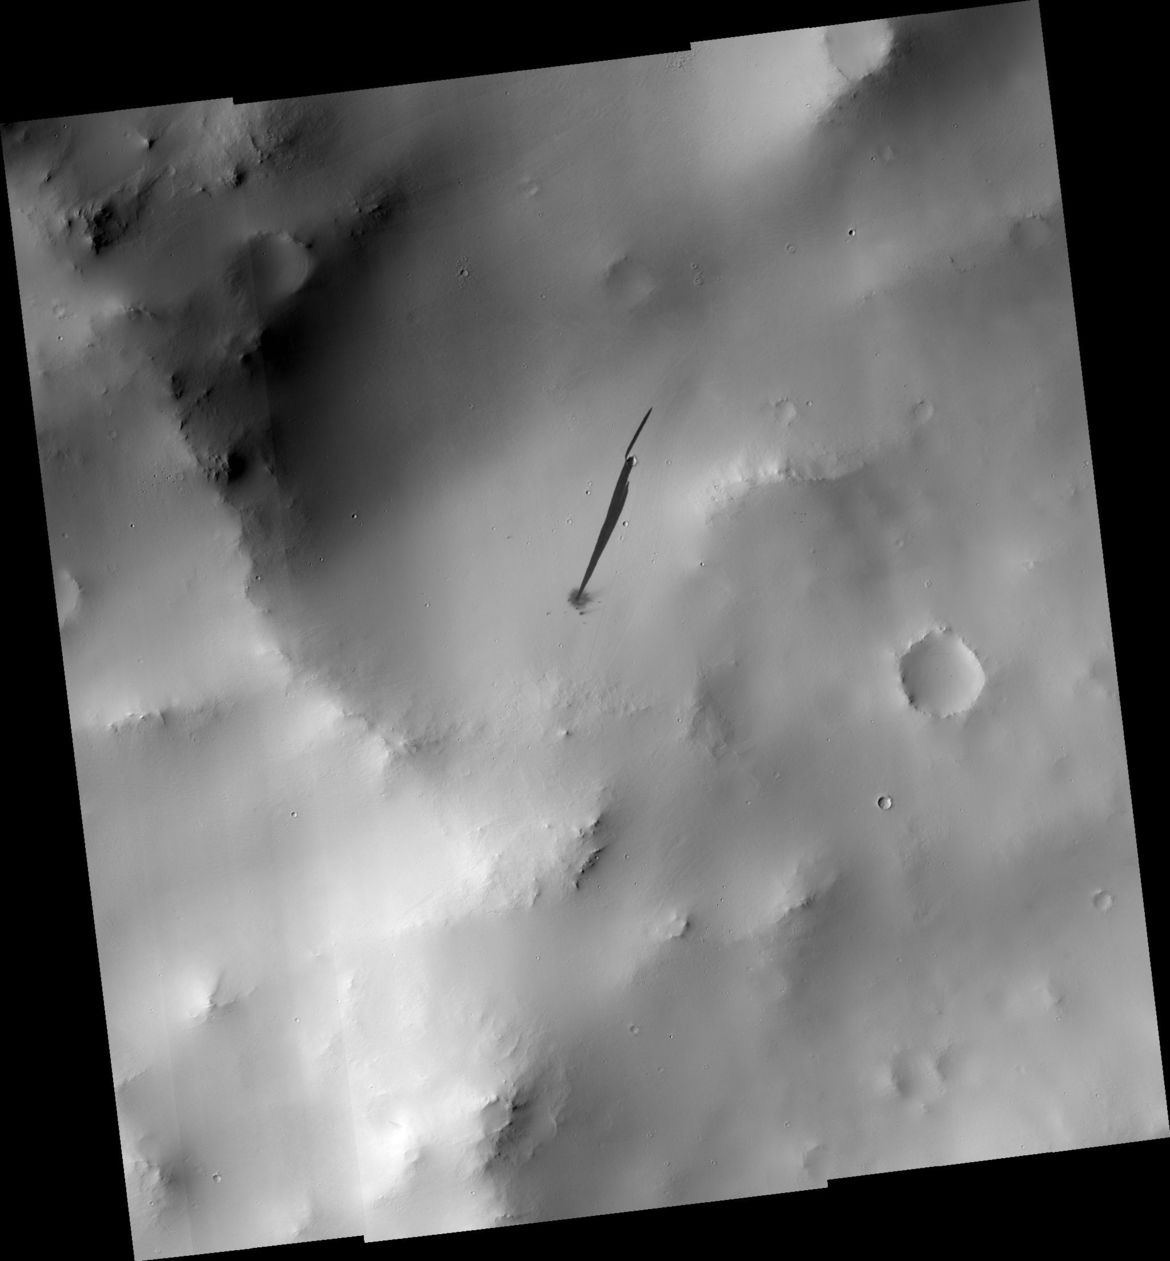 A wider view of the impact site shows the varying terrain, covered in light-colored dust. Credit: NASA/JPL/University of Arizona